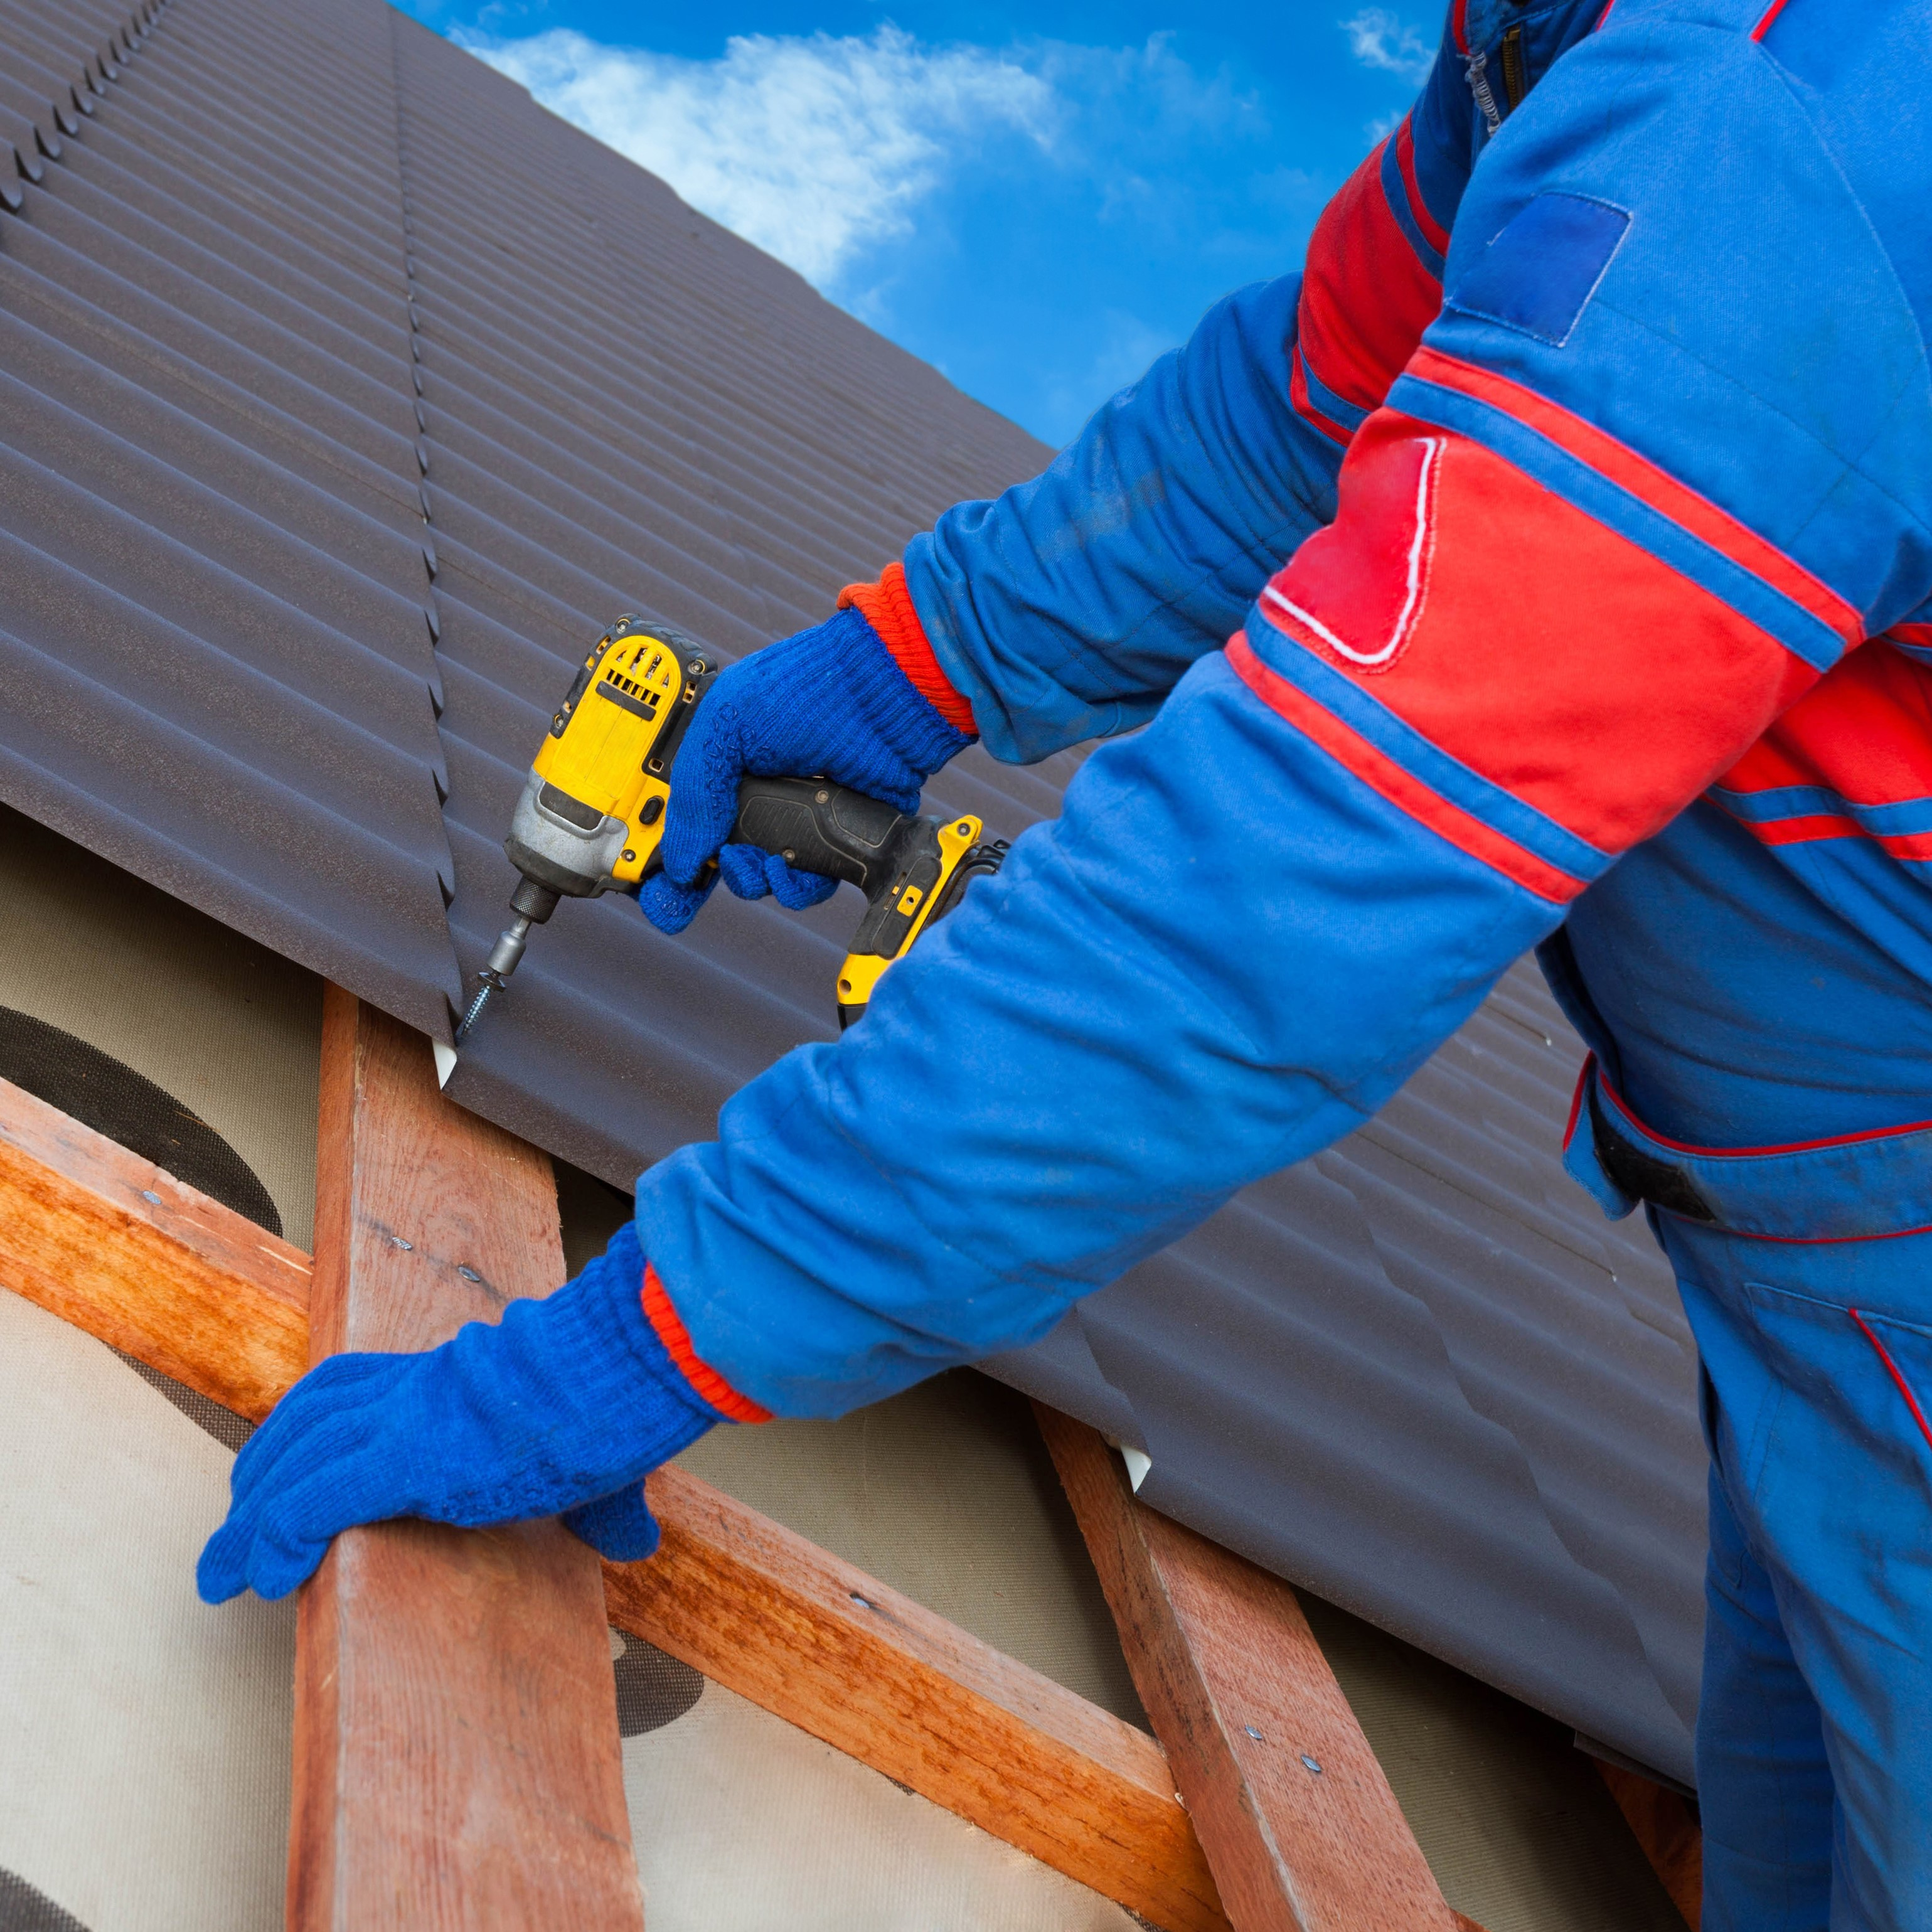 A roofer installing a roof.